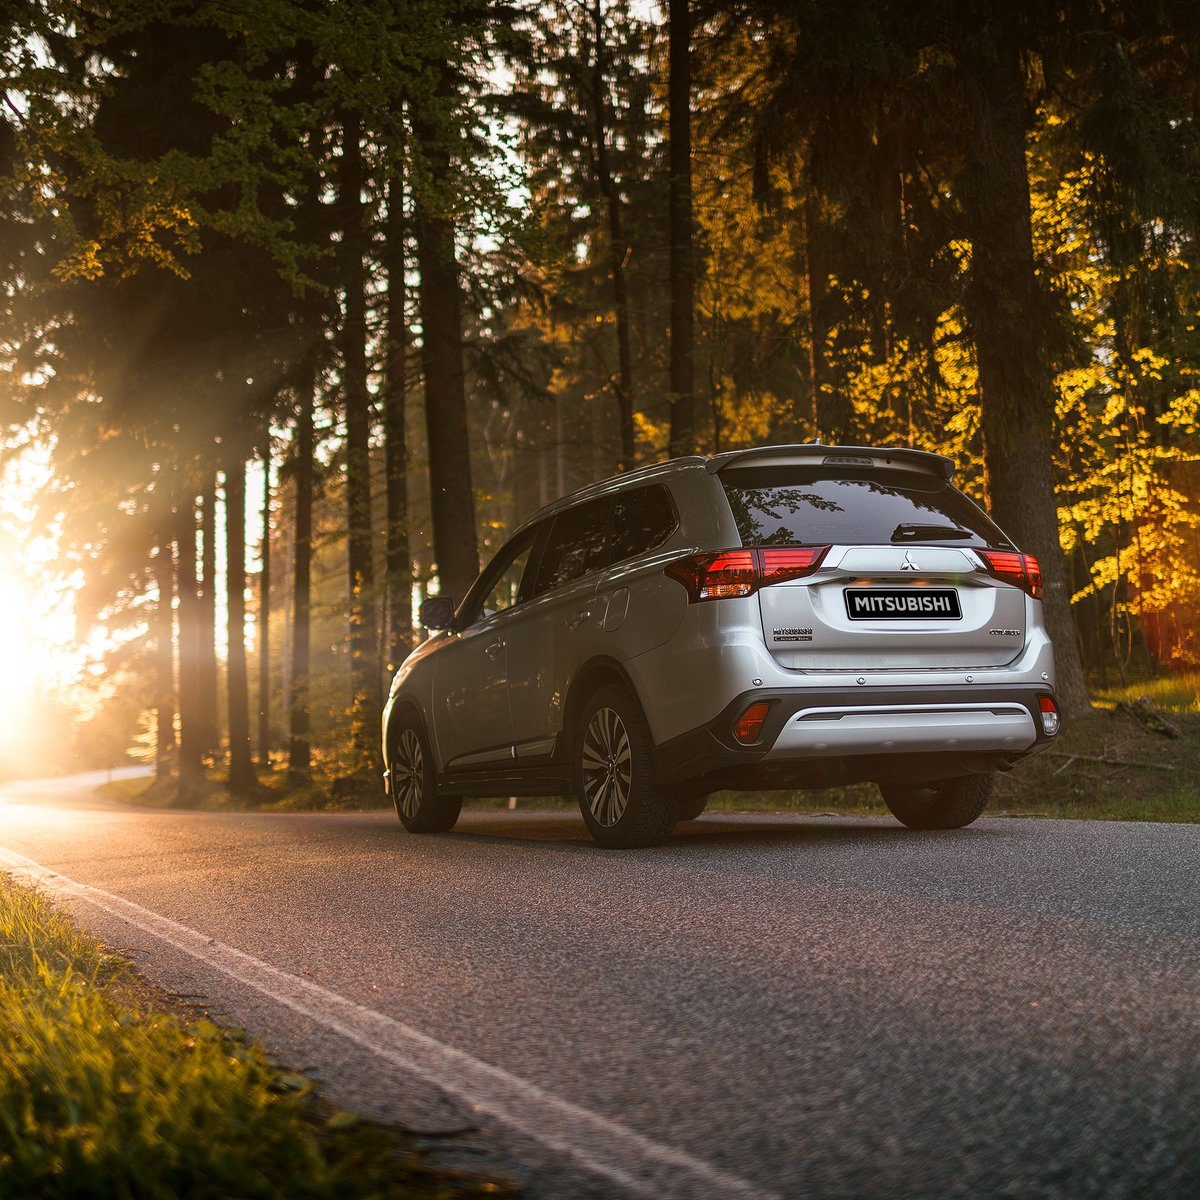 We and @AutoTrader_UK want to hear from you! 👇  Just share your thoughts about your Mitsubishi driving experience and you could win £500! Head to: